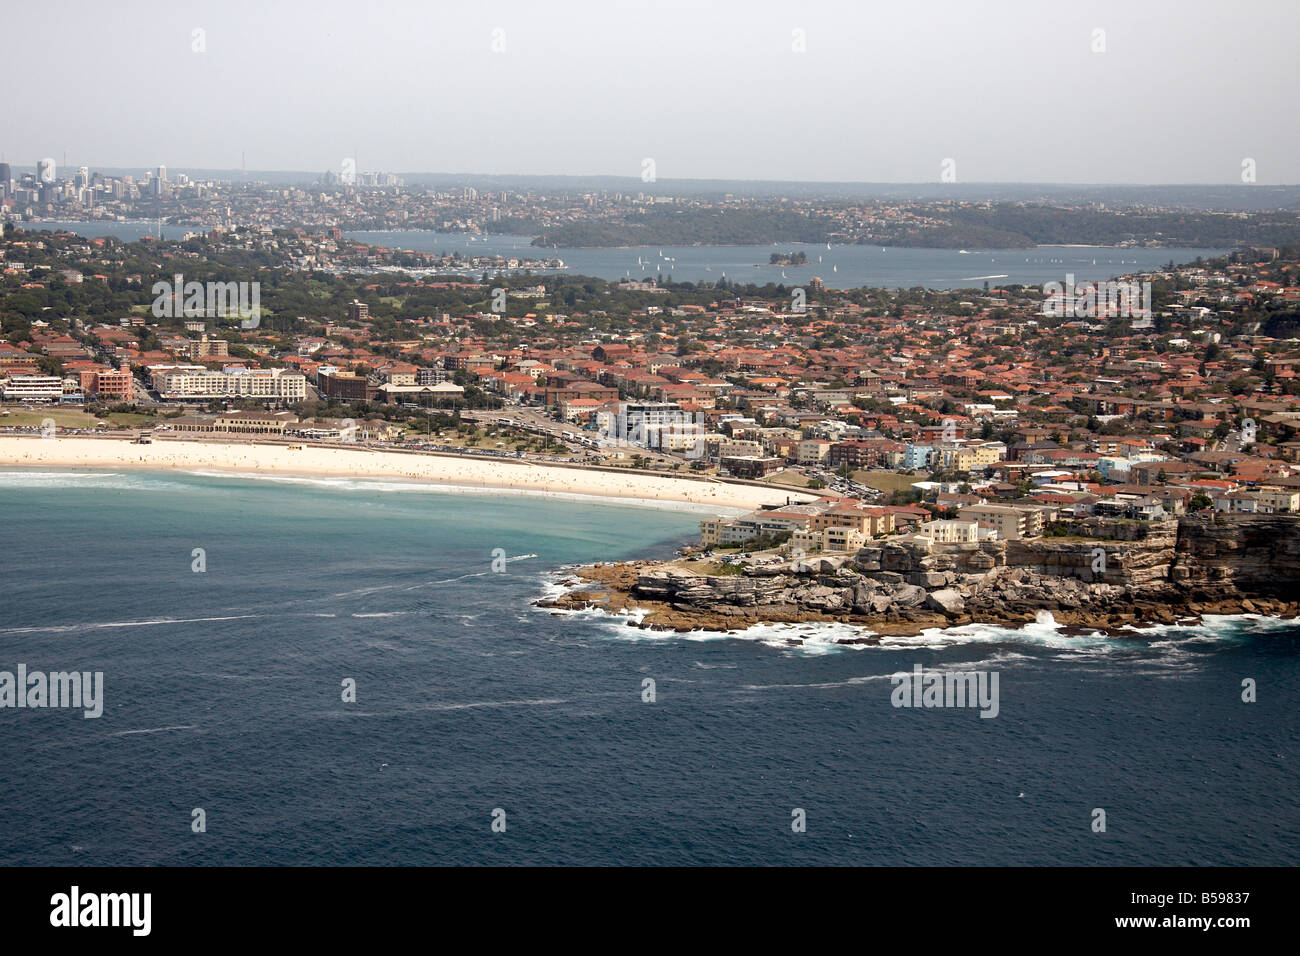 Aerial view north west of Ben Buckler and suburban houses Bondi Bay Sydney NSW Australia High level oblique Stock Photo